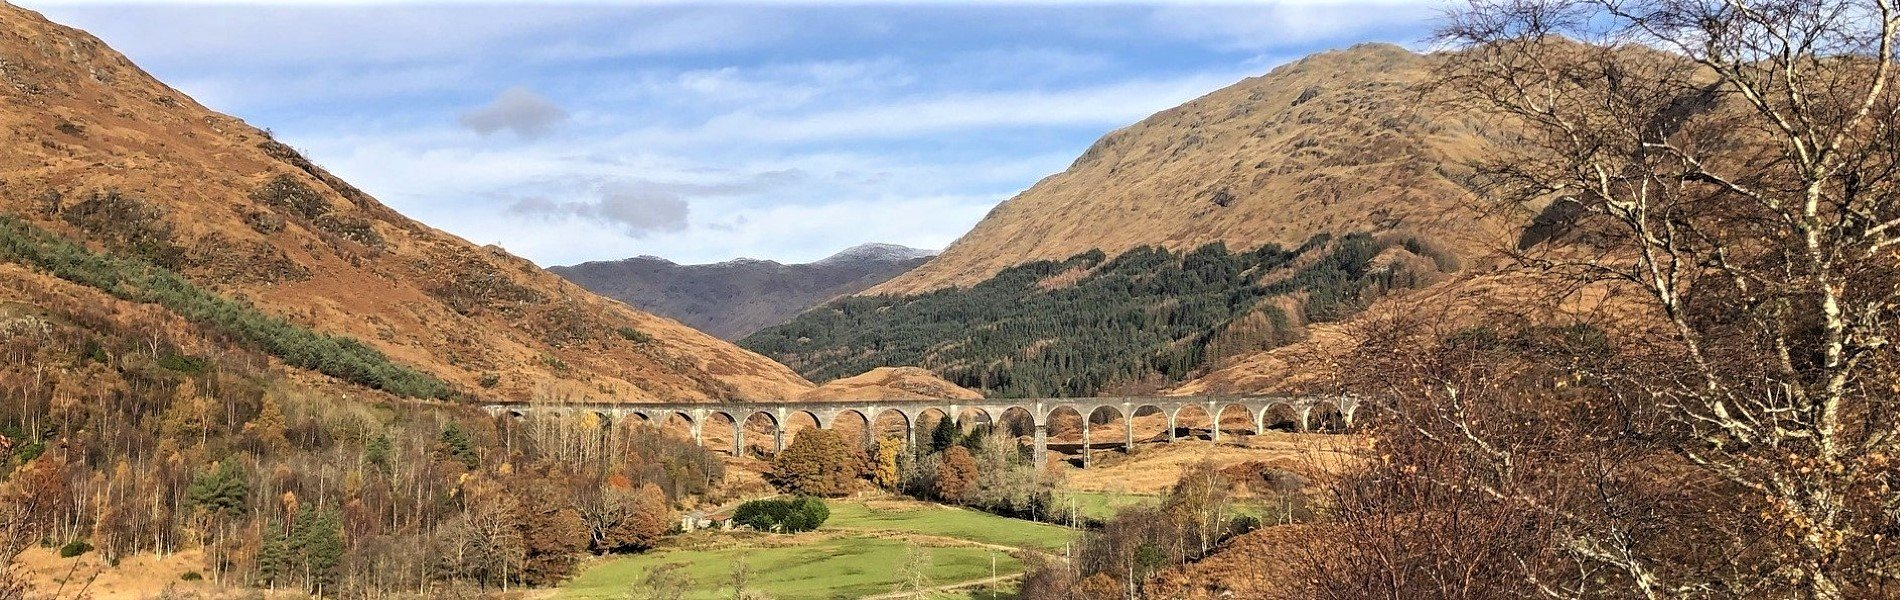 Glenfinnan Viaduct cover, Highlands, Scotland